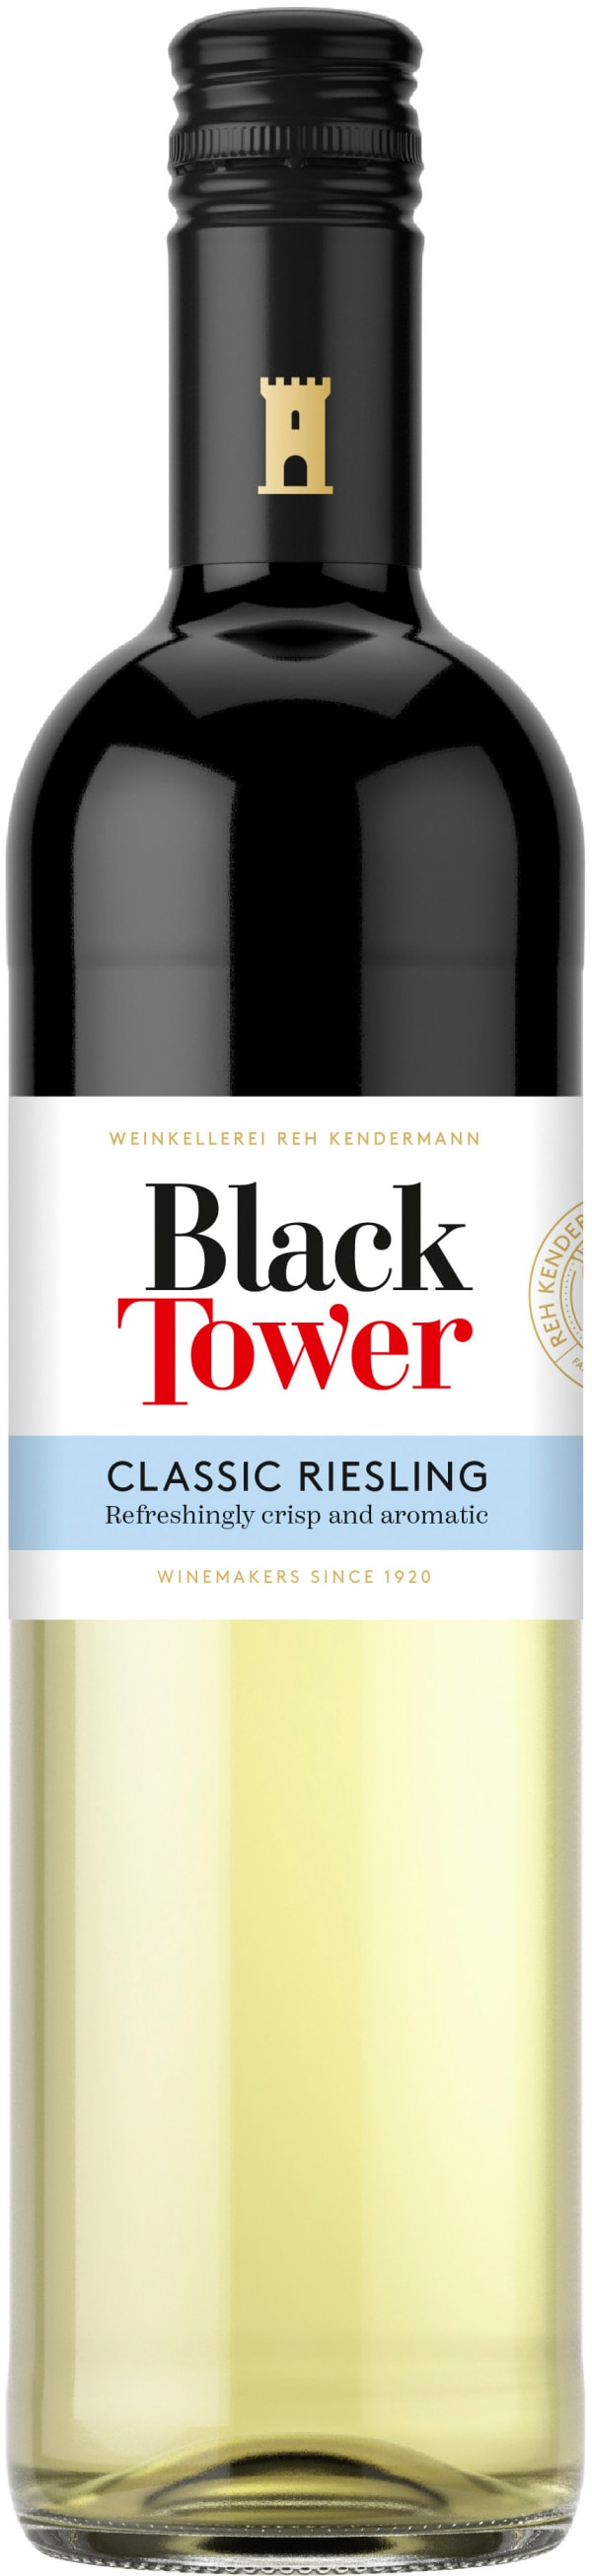 Black Tower Classic Riesling 2020